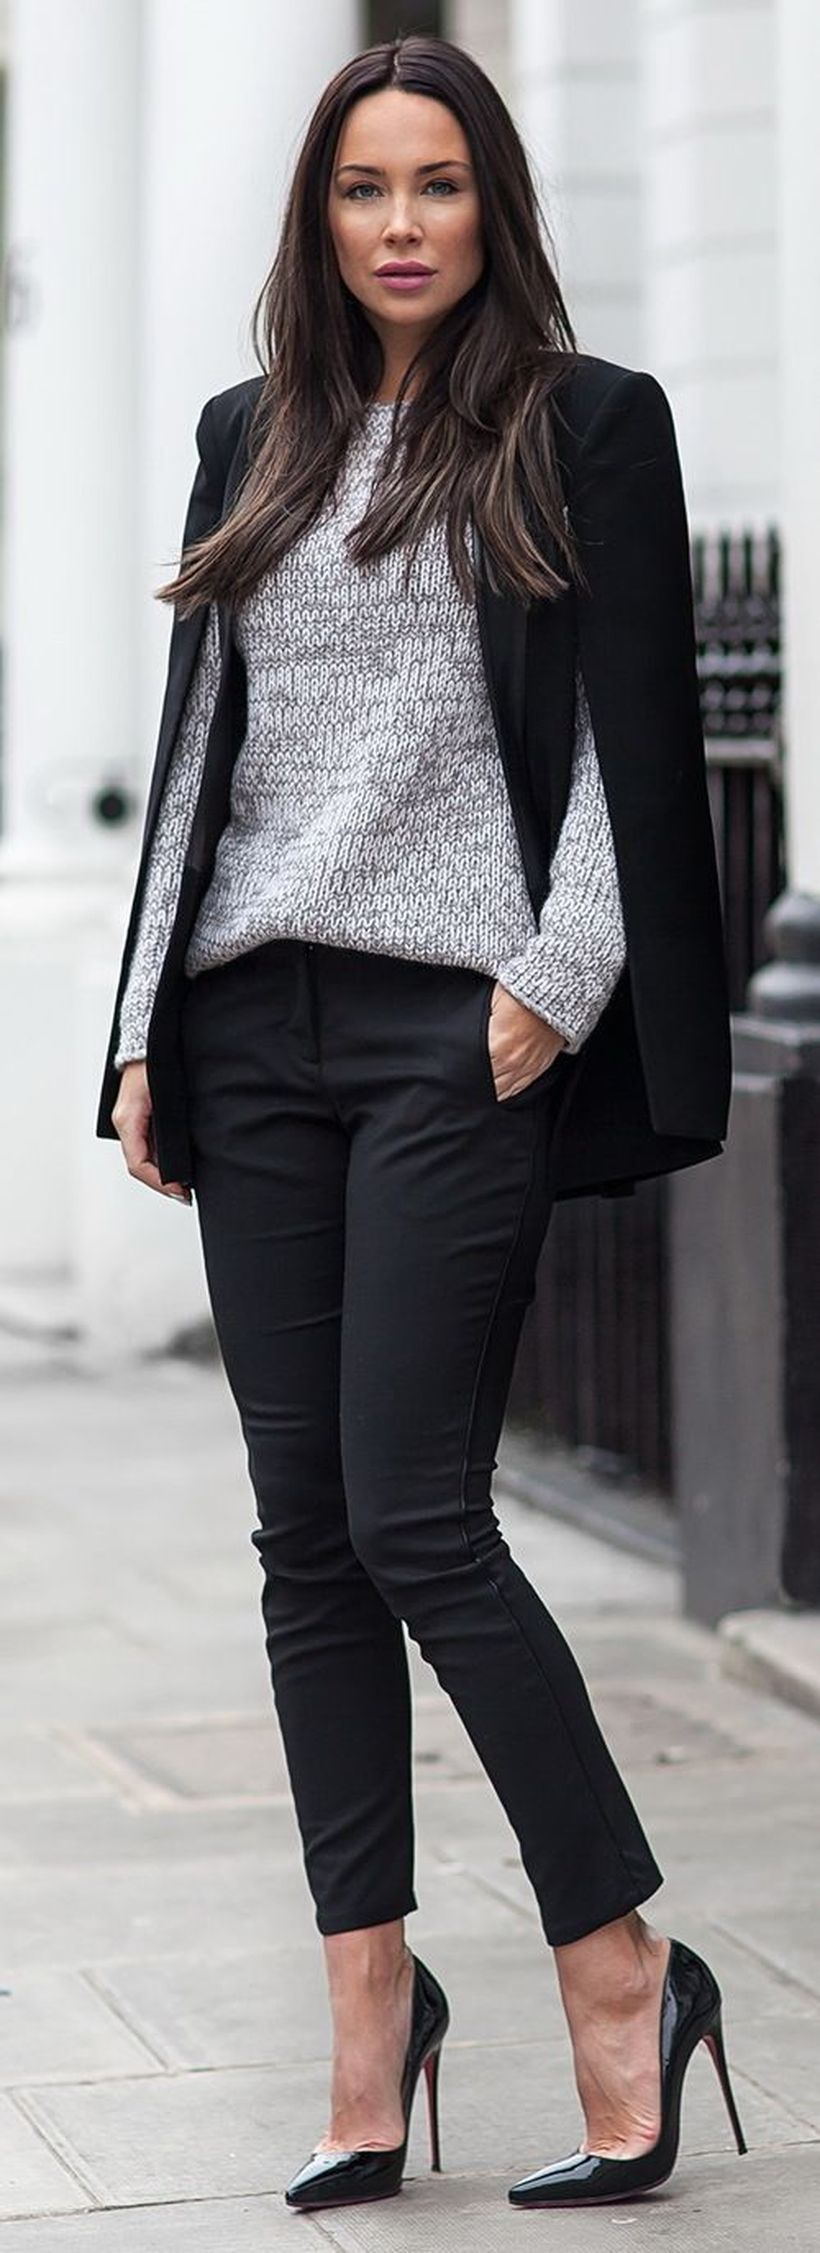 Elegant outfit with black cape blazer, gray jacket, black pants and black high heels